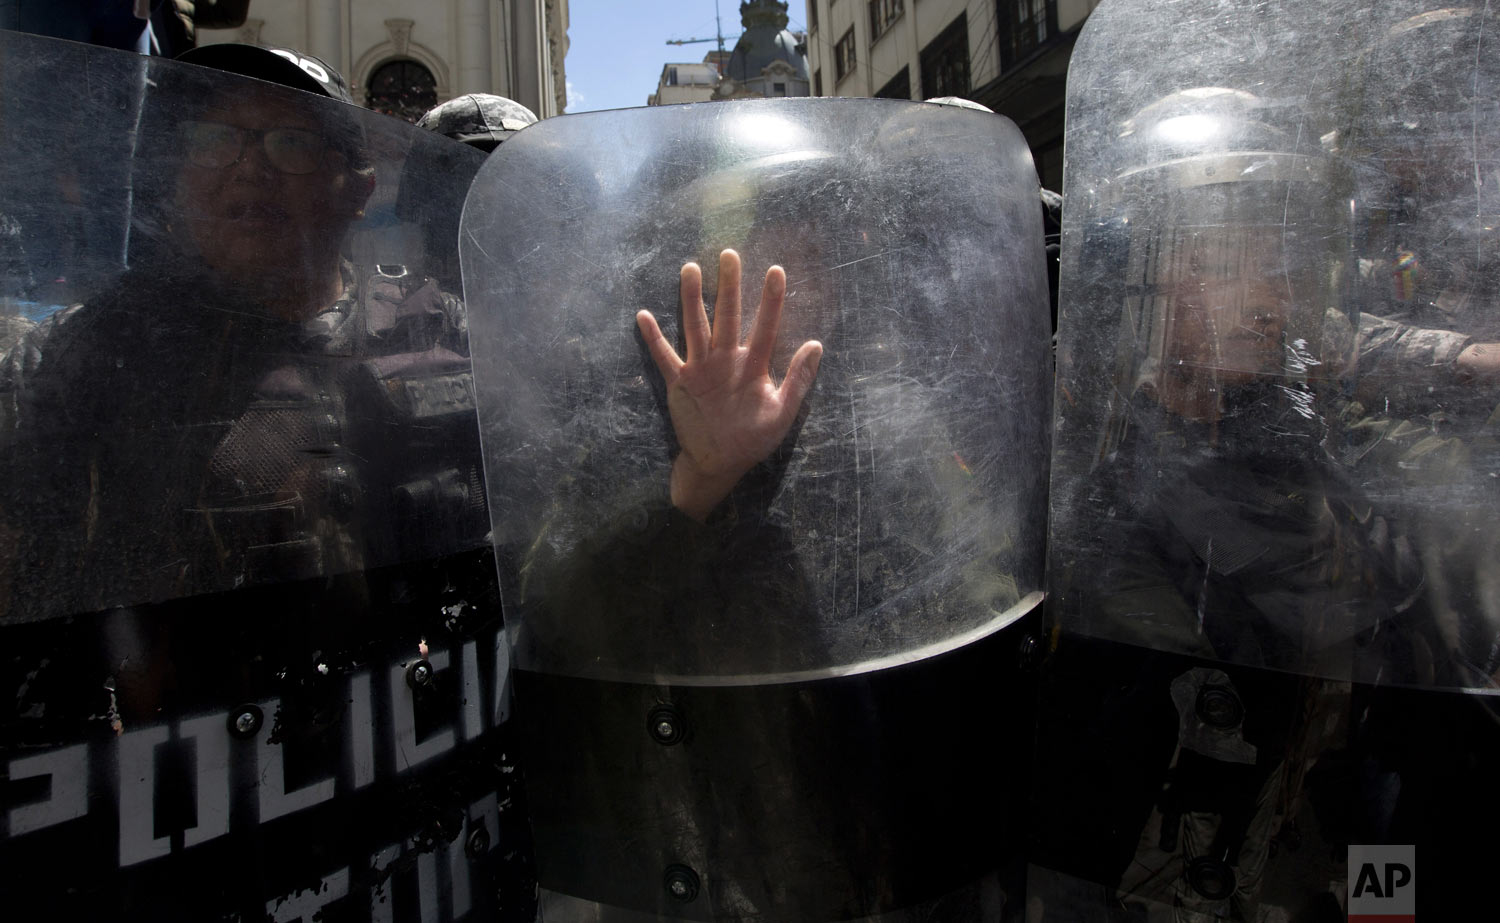 A riot police officer places her hand on her shield as she helps to prevent a march marking International Women's Day from reaching the government palace, in La Paz, Bolivia, on Friday, March 8, 2019. The day has been sponsored by the United Nations since 1975 as millions of women around the world are demanding equality amid a persistent salary gap, violence and widespread inequality. (AP Photo/Juan Karita)